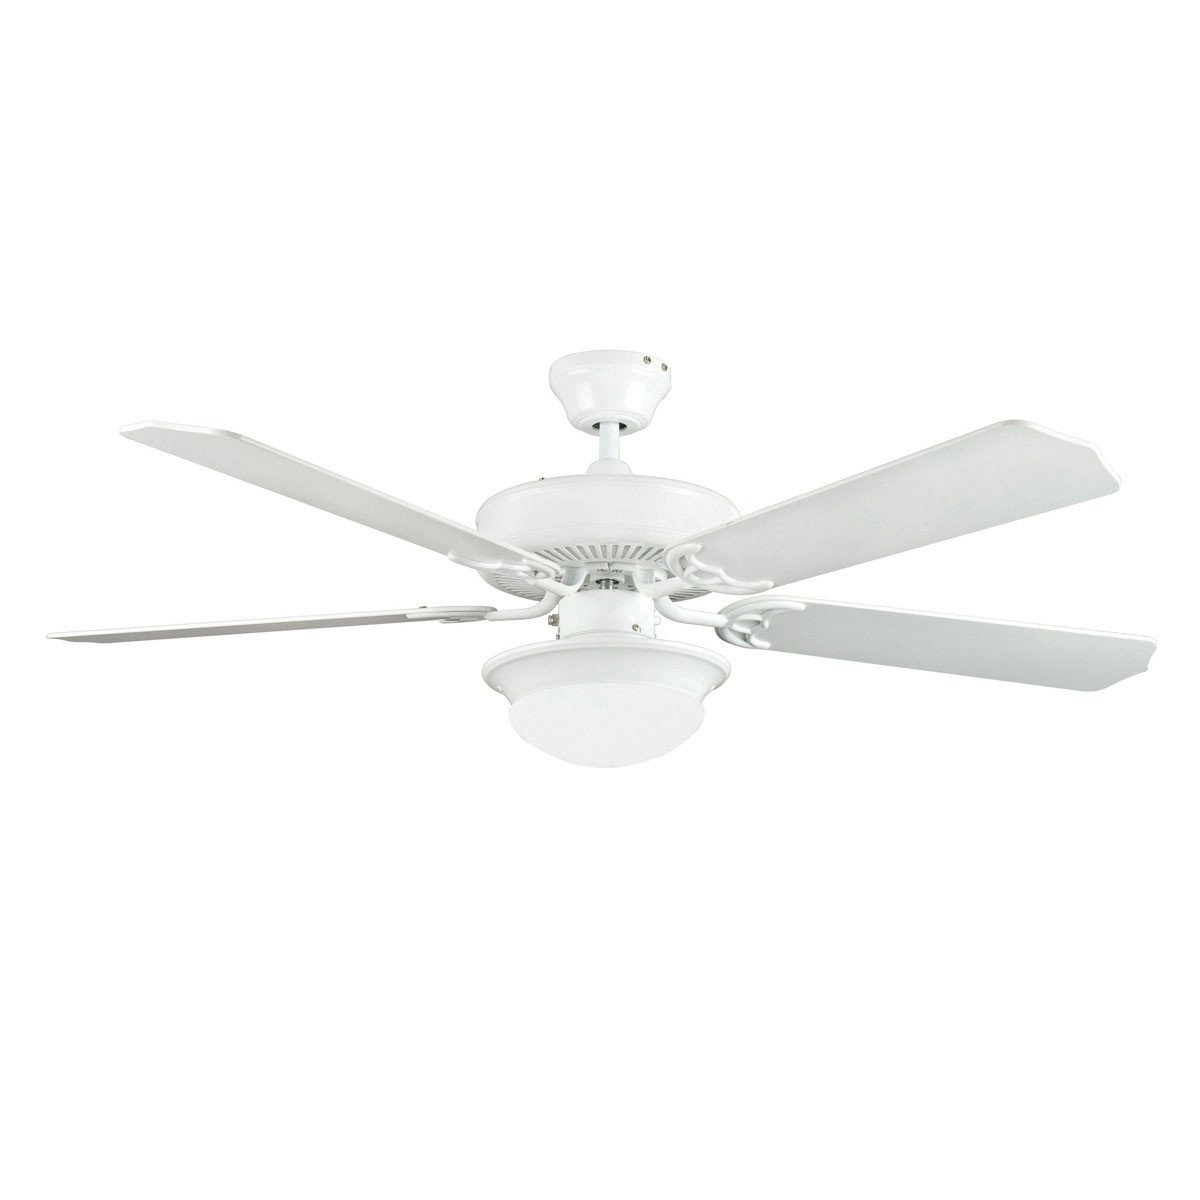 "Concord Fans 52"" Modern Energy Saver White Ceiling Fan with Round Light Kit"